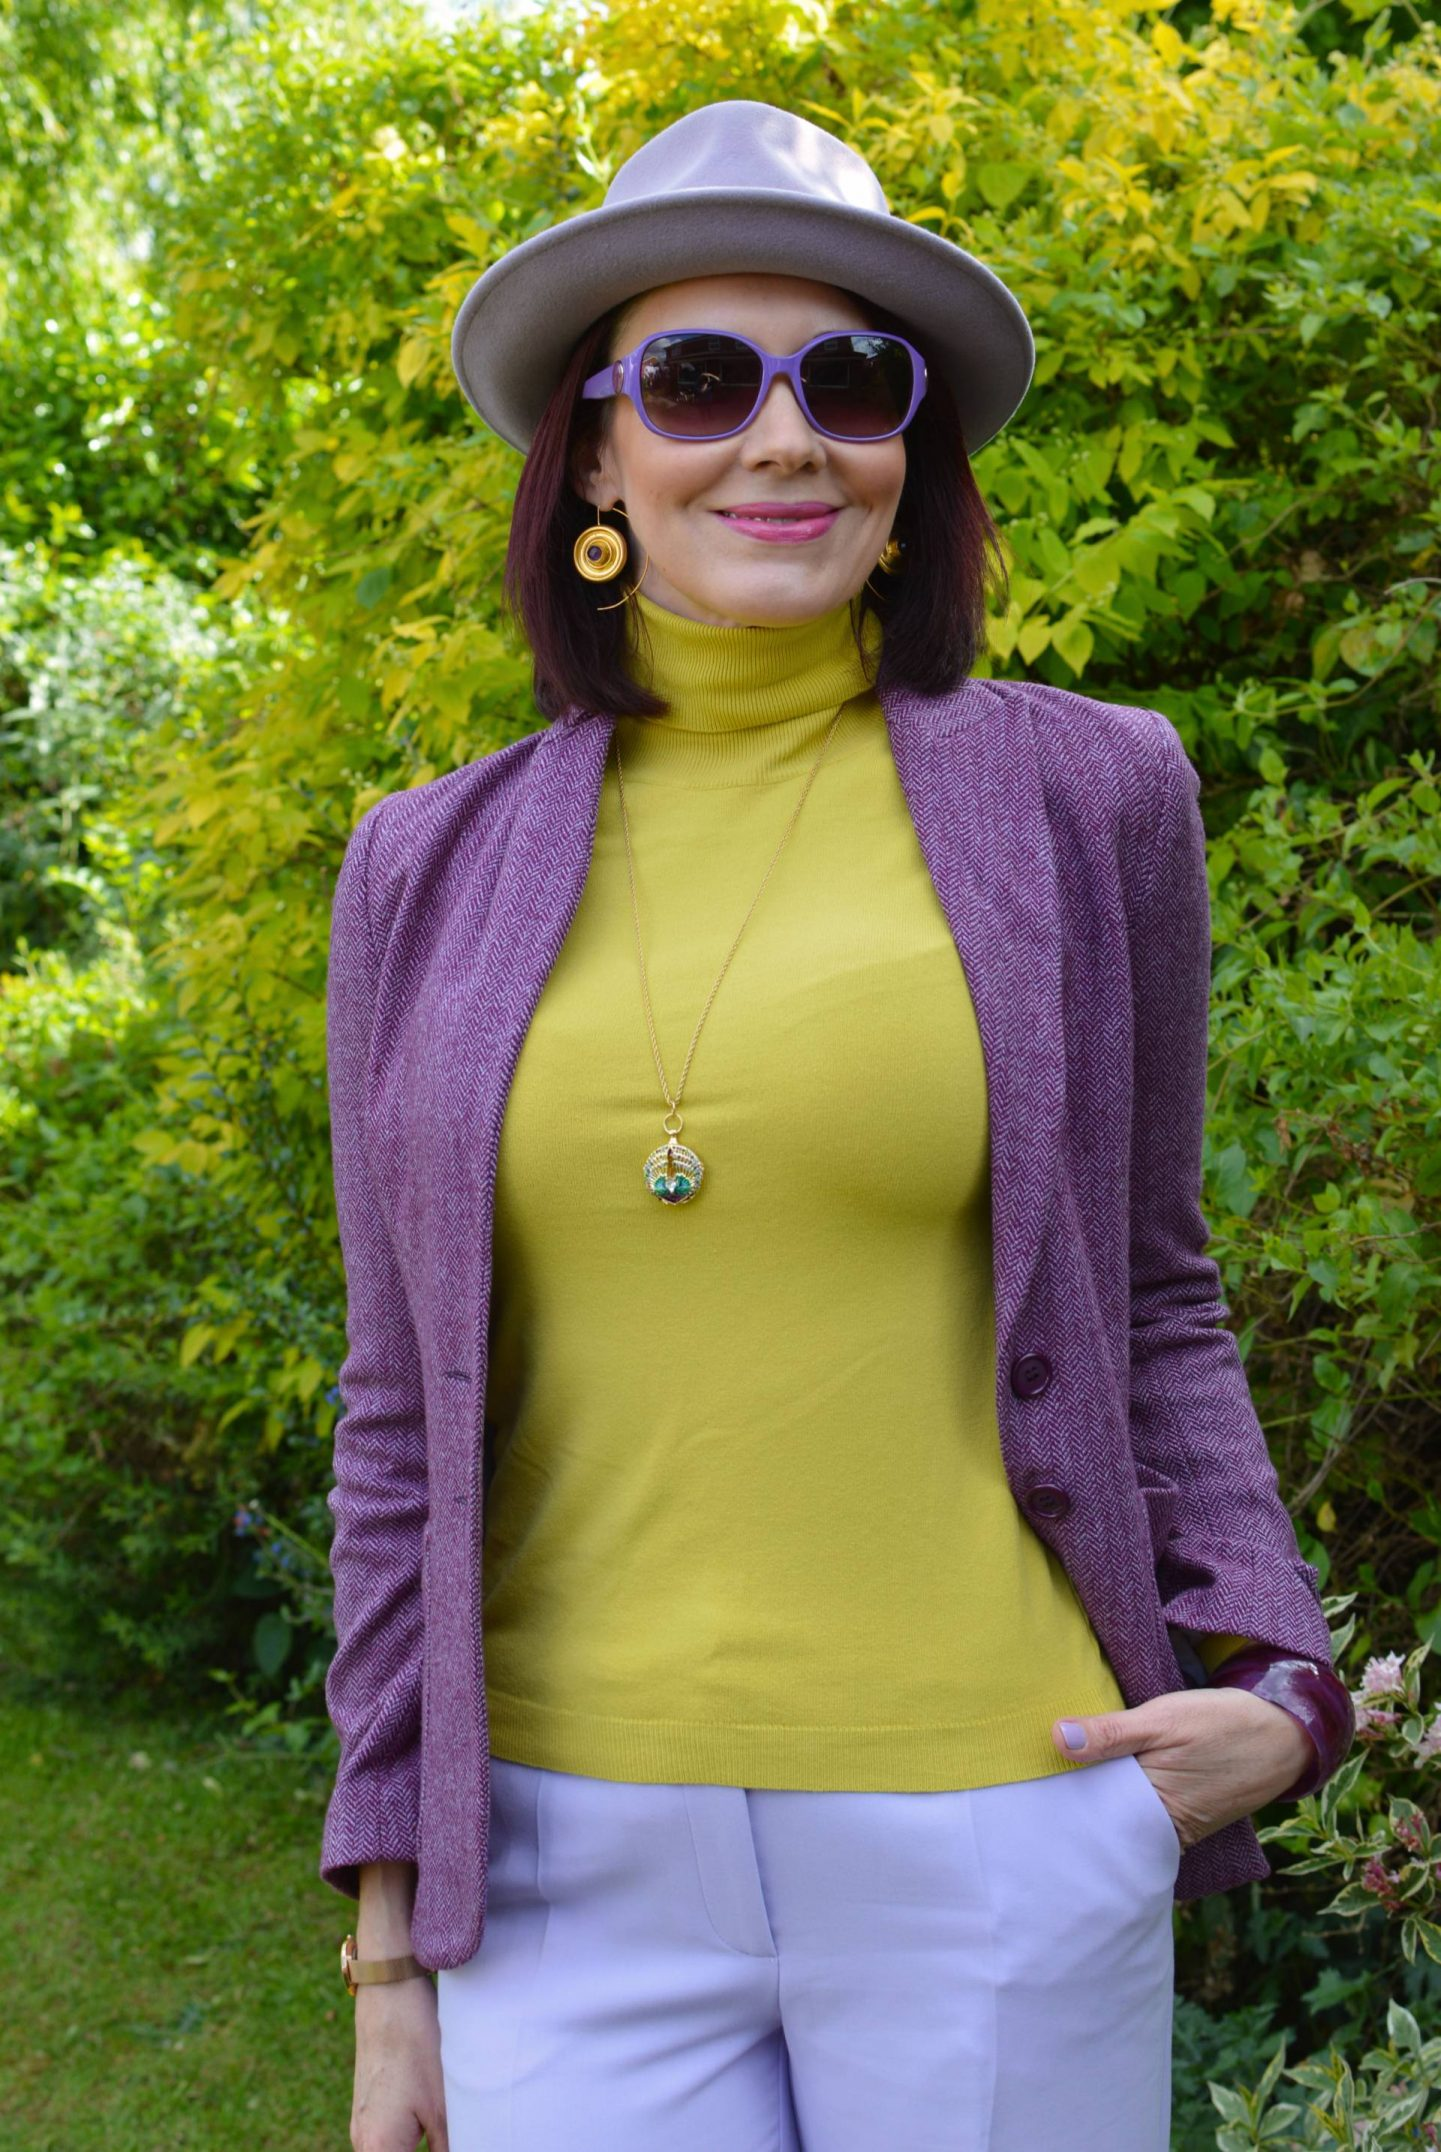 Lavender and Golden Yellow, Anthropologie lilac fedora, Maje purple tweed jacket, Karen Millen yellow high neck sweater, Ottoman Hands amethyst disc earrings, Ted Baker purple sunglasses